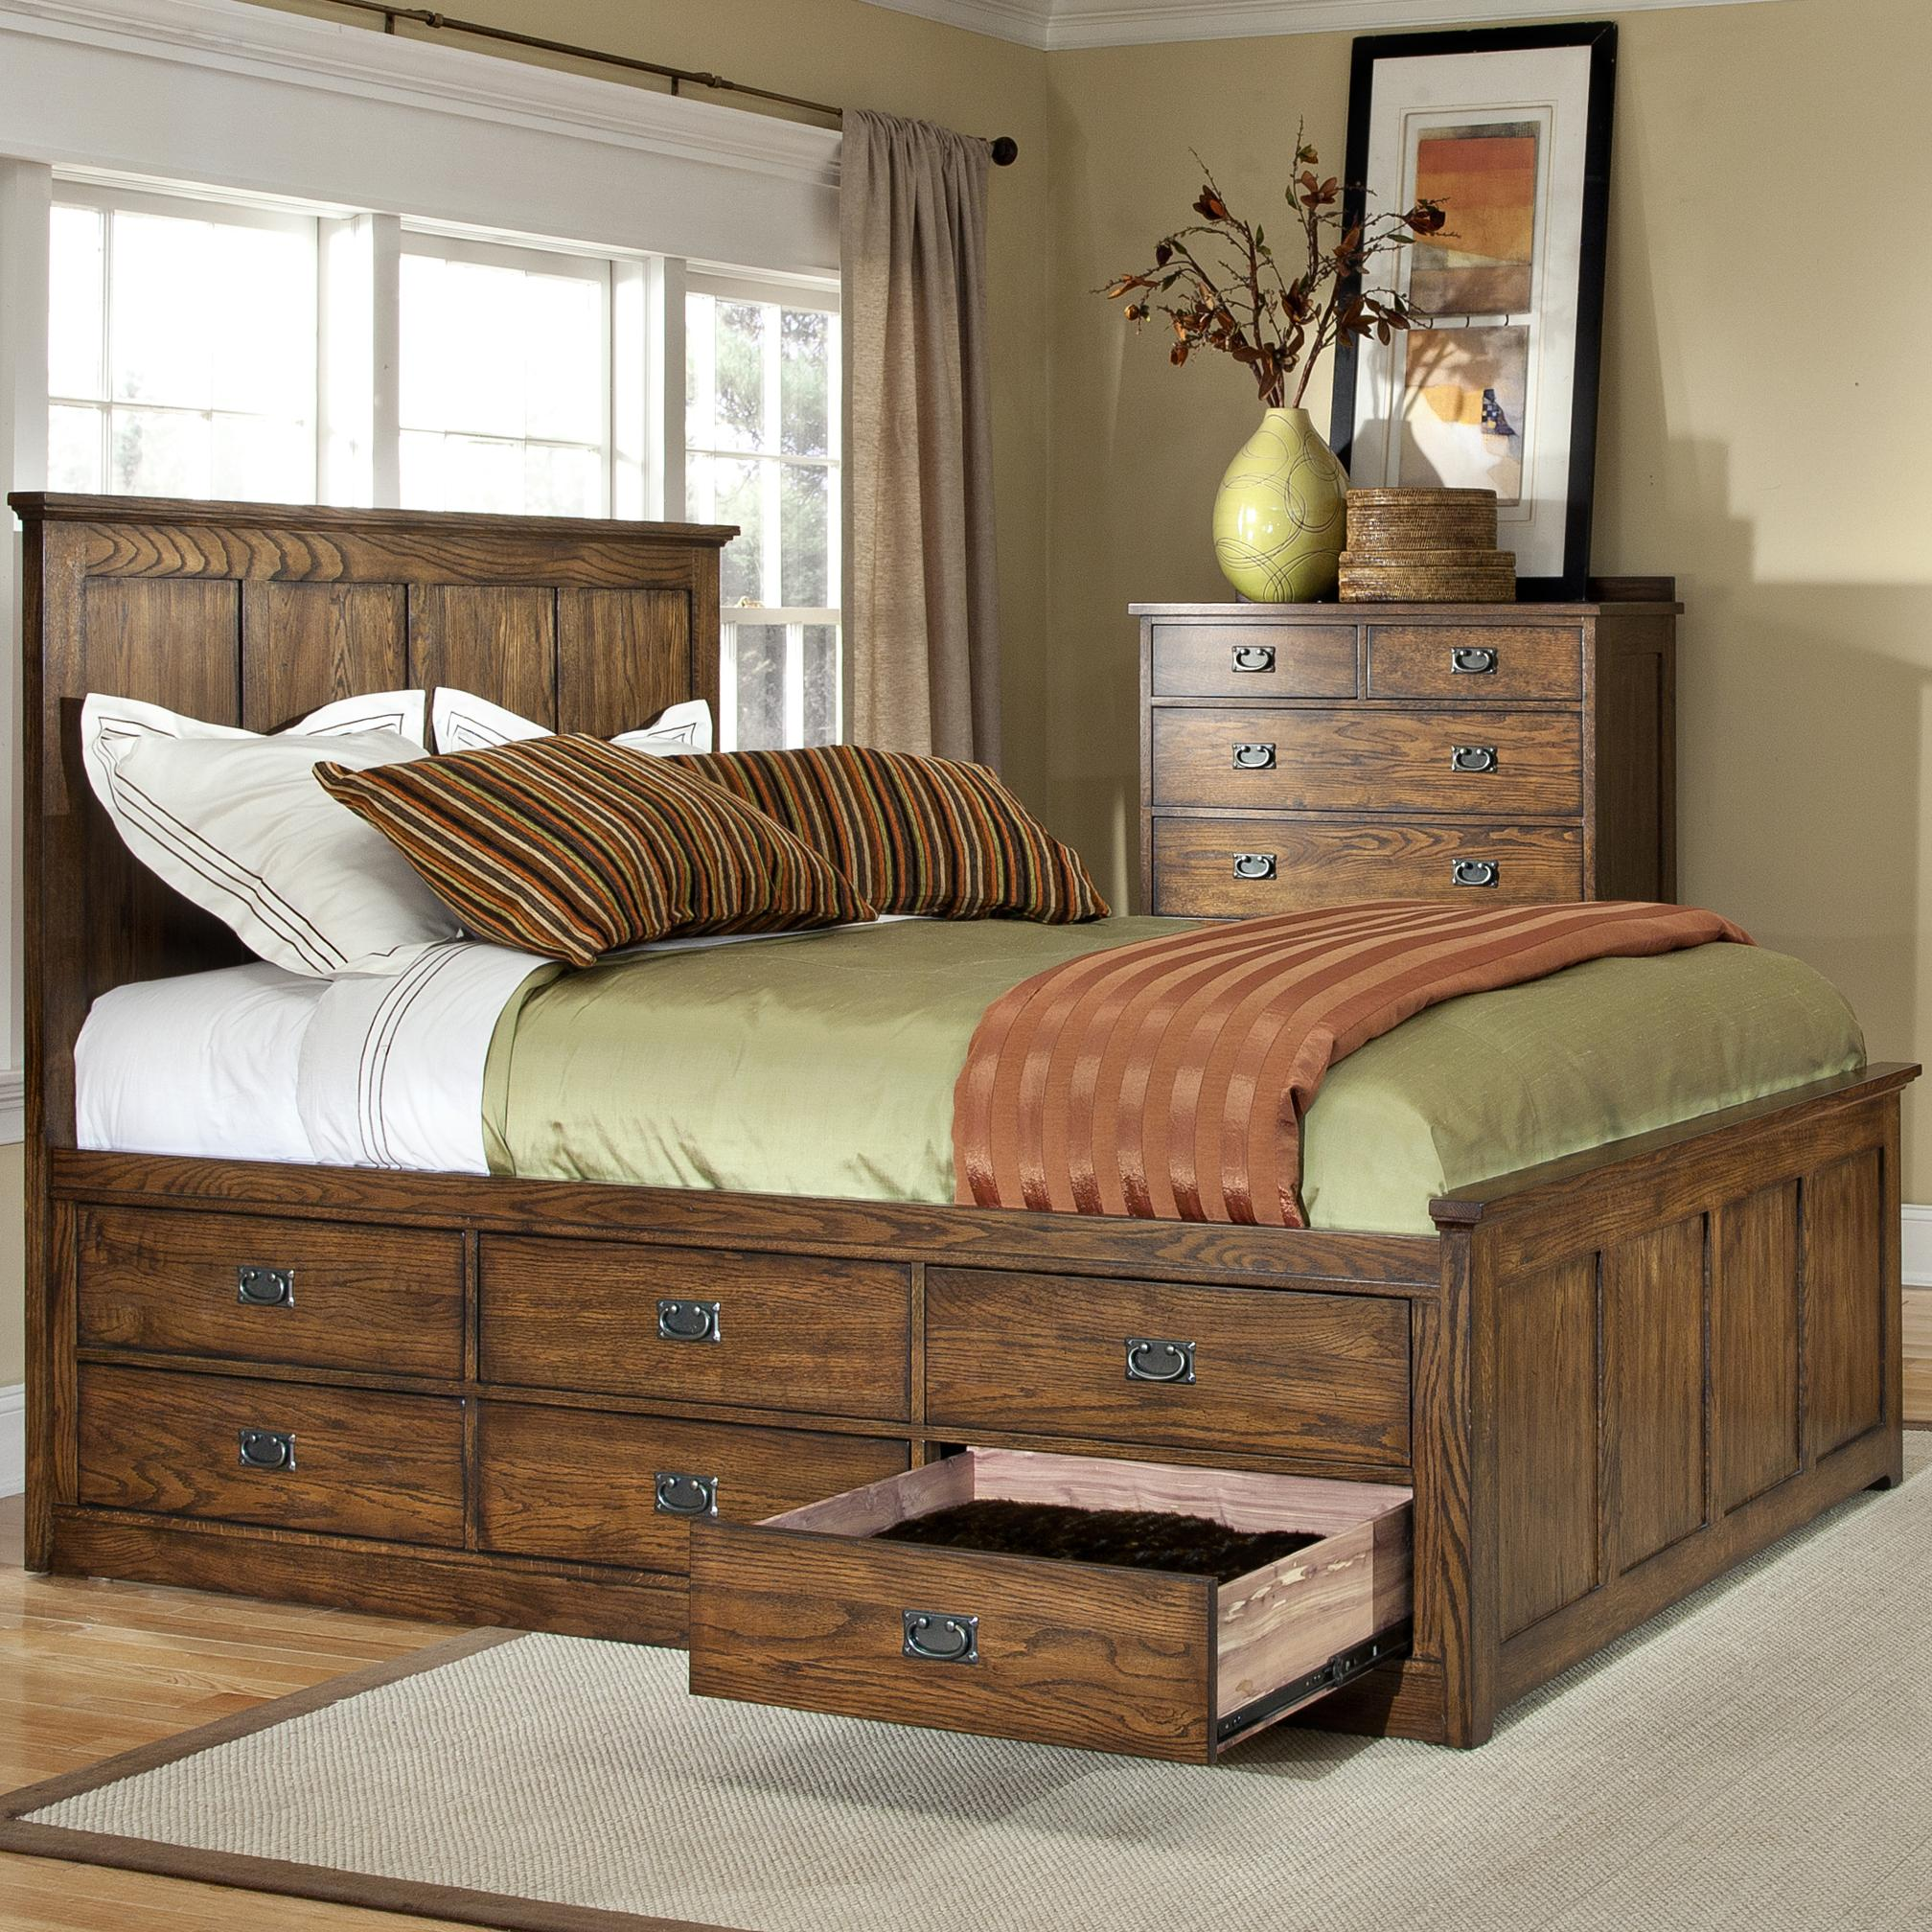 Fullsize Of King Platform Bed With Storage